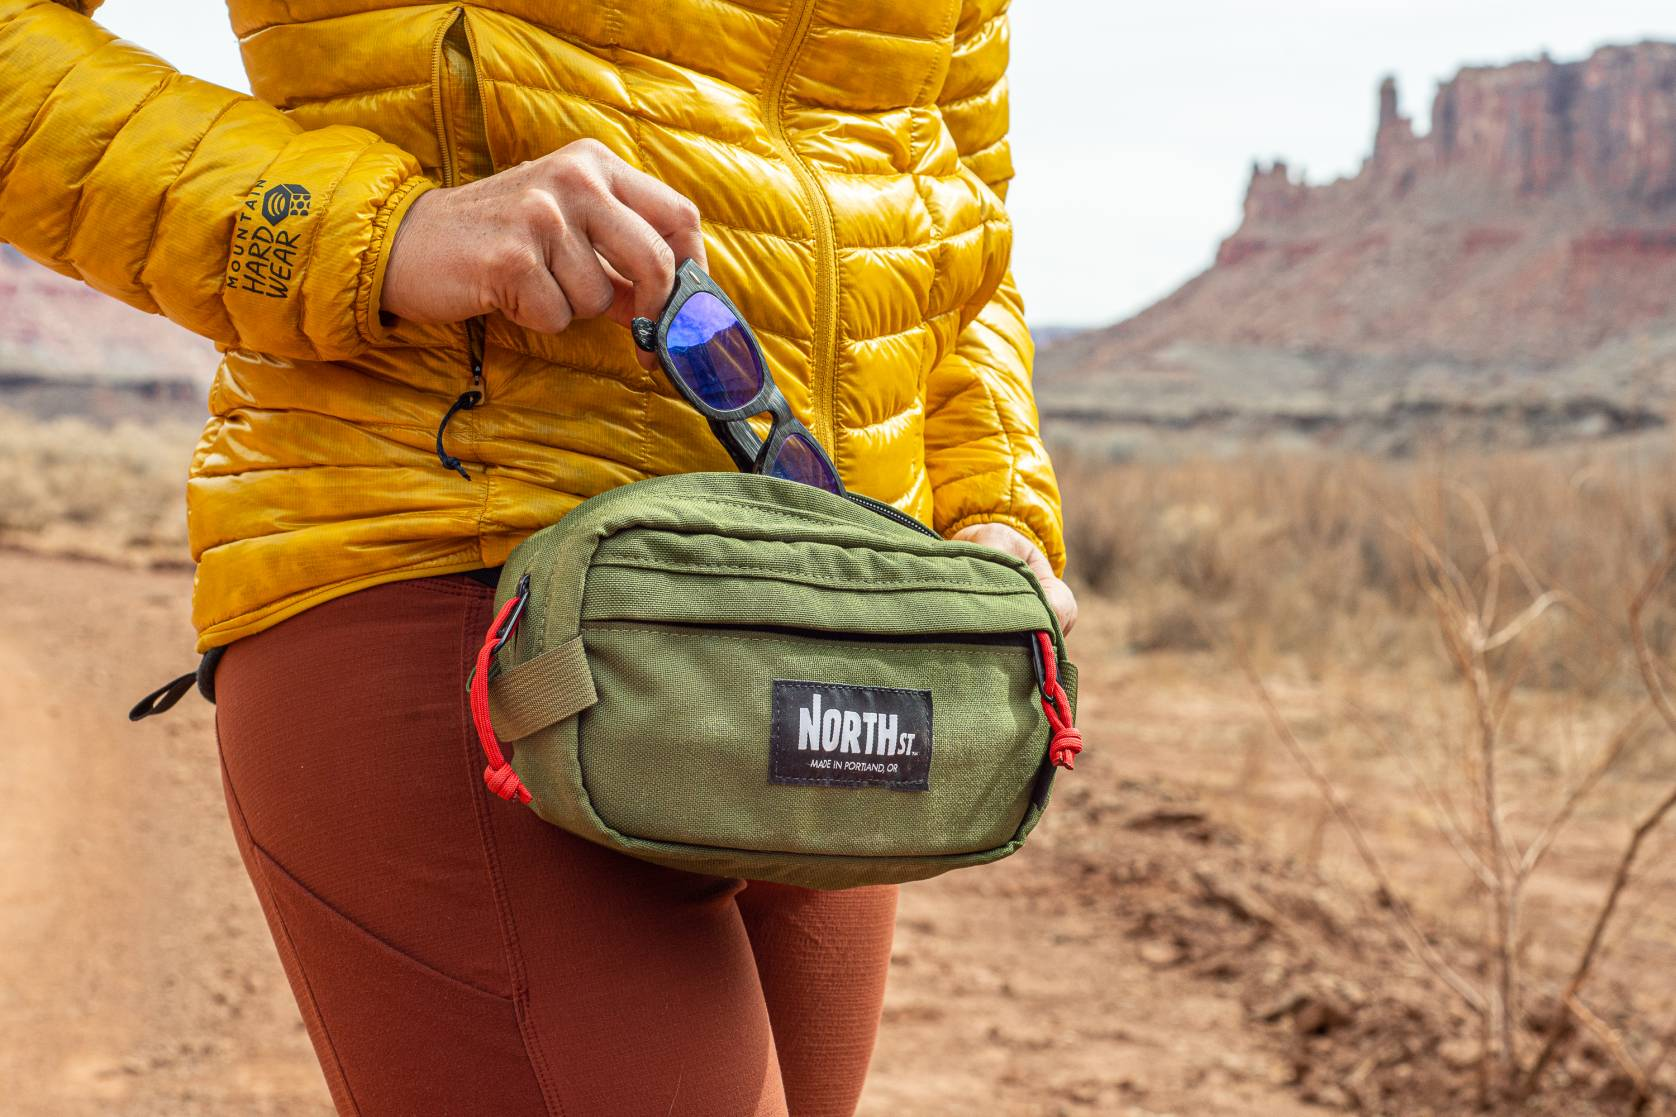 The American Made Topo Designs is one of the best Fanny Packs of 2021